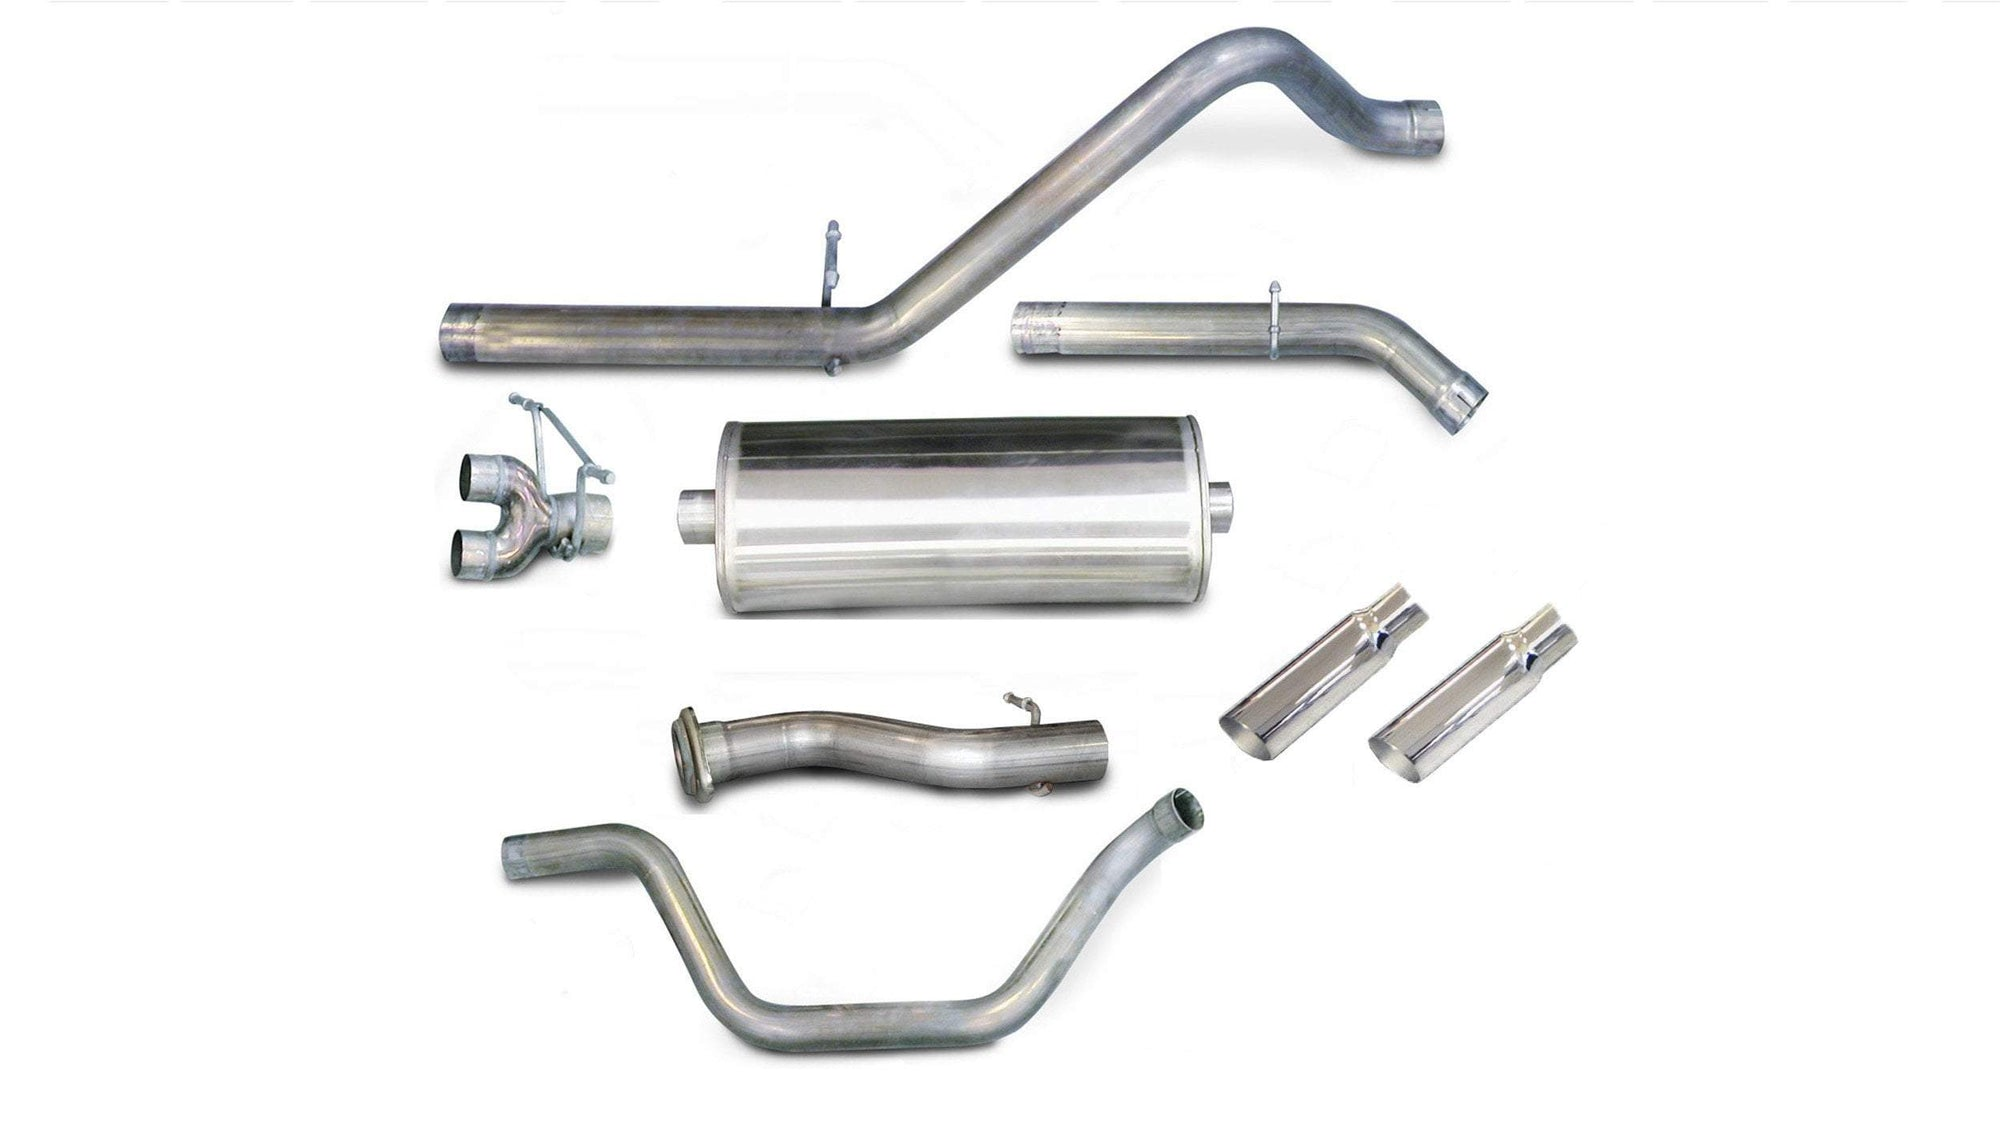 "dB Cat-Back Exhaust Polished / Sport / Dual Rear - Single 4in 2007-2008 Silverado, Sierra 4.8L, 5.3L, 6.0L V8 3.0"" Single Side Exit Catback Exhaust System with 4.0"" Tip (24199) Sport Sound Level"